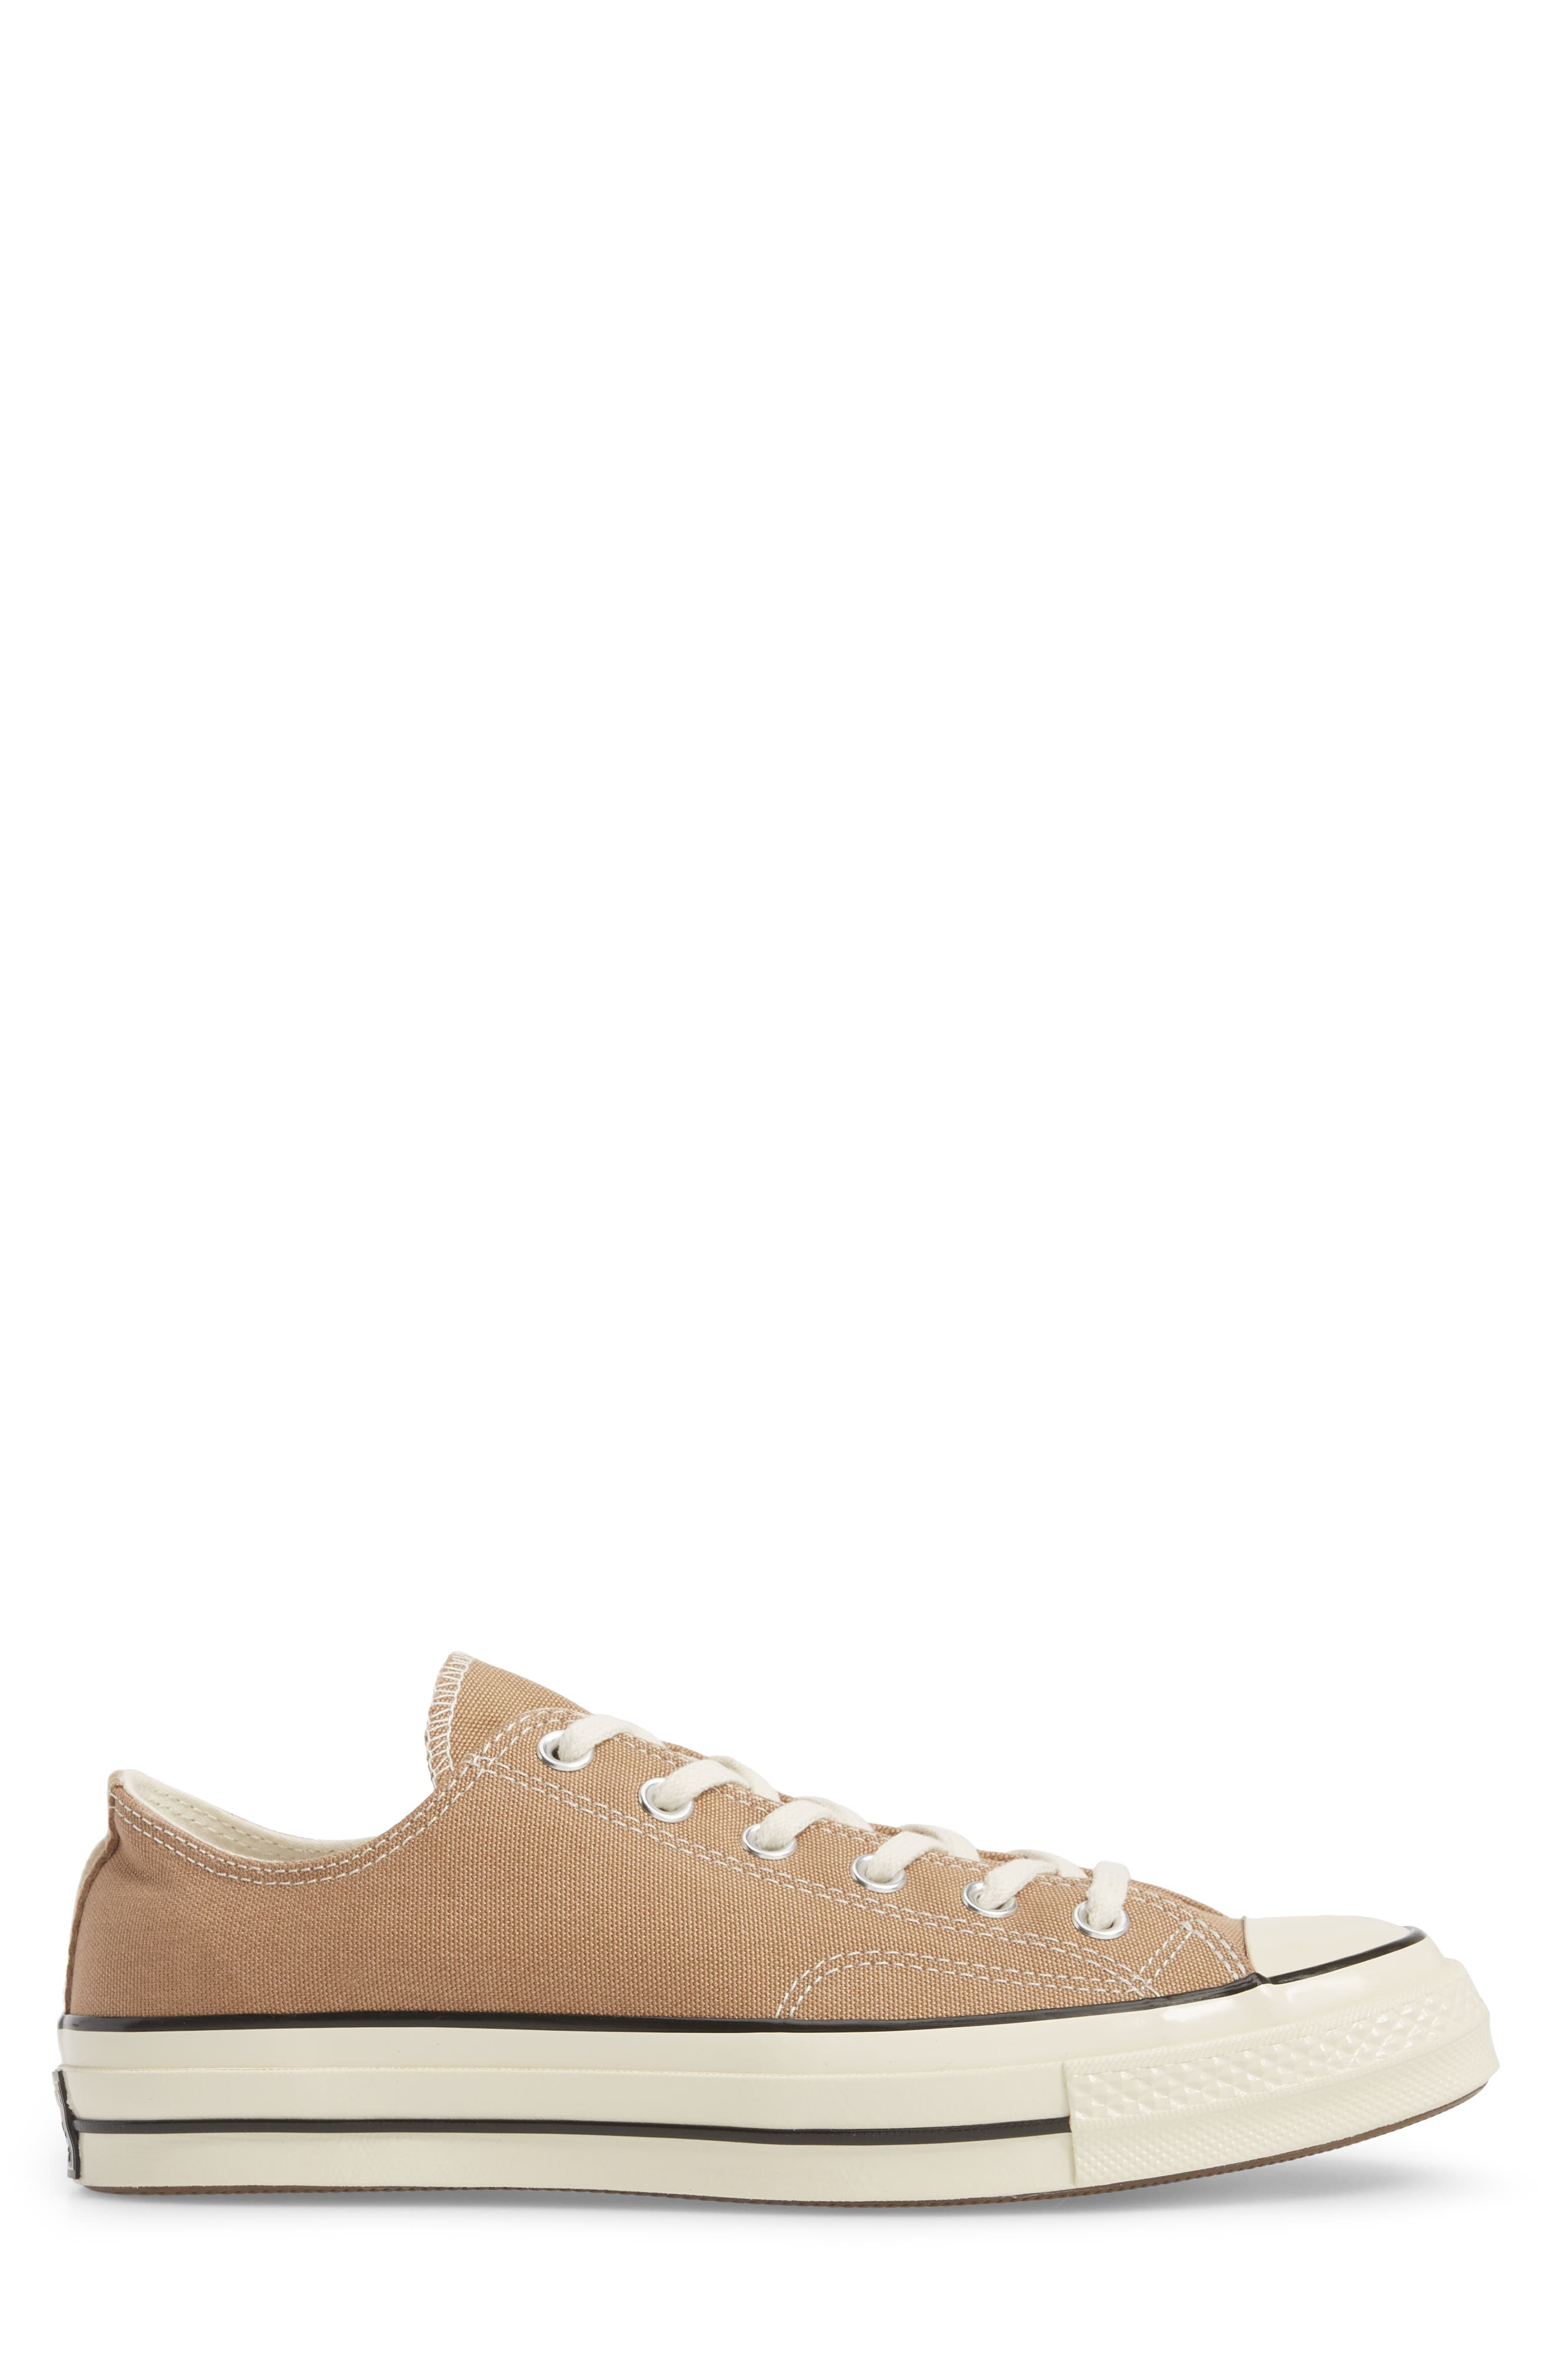 Chuck Taylor<sup>®</sup> All Star<sup>®</sup> 70 Heritage Sneaker,                             Alternate thumbnail 4, color,                             Teak Canvas